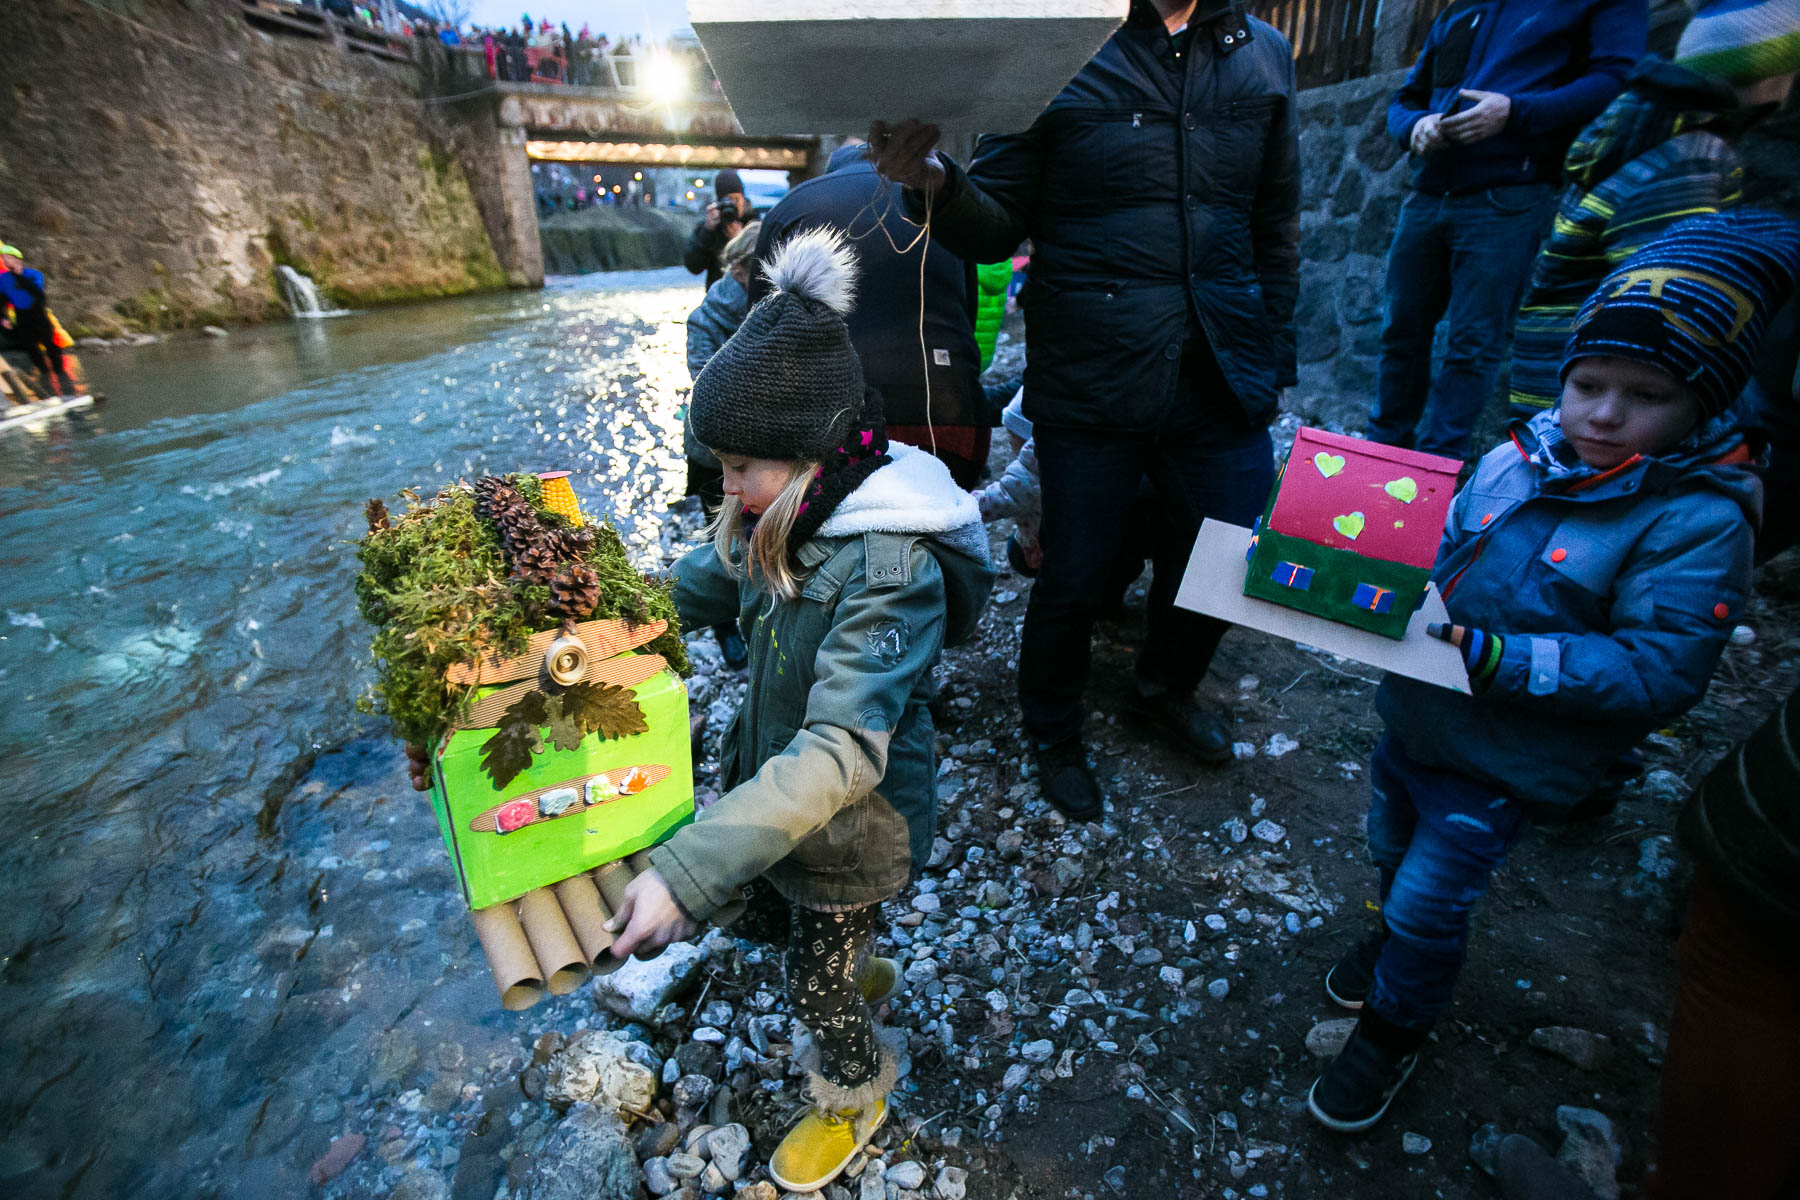 Children carry model houses or {quote}gregorcki{quote} to the water during a traditional event called Light in the water, in which model houses and other objects are lit with candles and thrown in the water to symbolize the coming of spring, in Trzic, Slovenia, on March 11, 2016, the eve before St. Gregory's Day that was once the first day of spring.